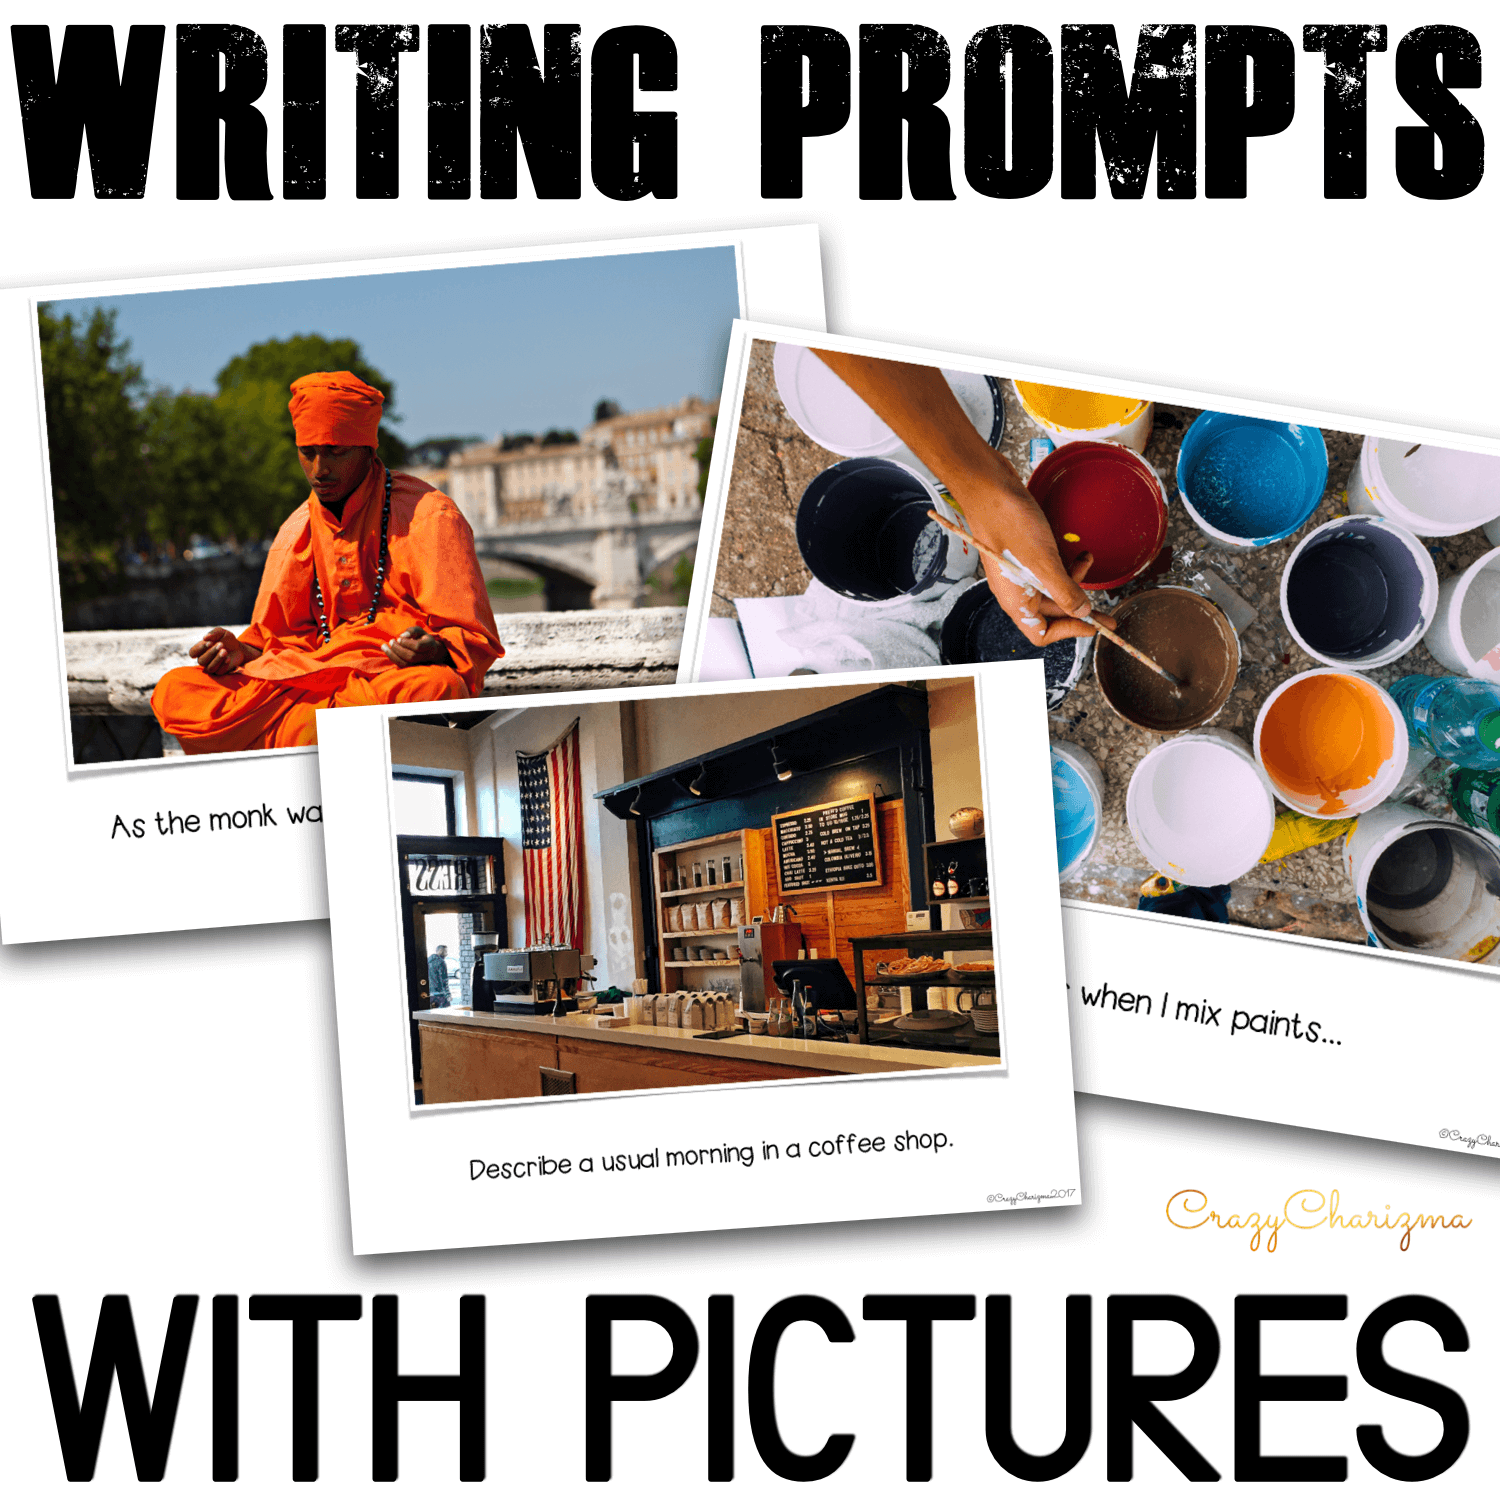 If you don't know what topic to use for writing, these 50 Writing Prompts will be of great help! Real photos tell stories. Engage your students with creative writing and let them make the stories meaningful!